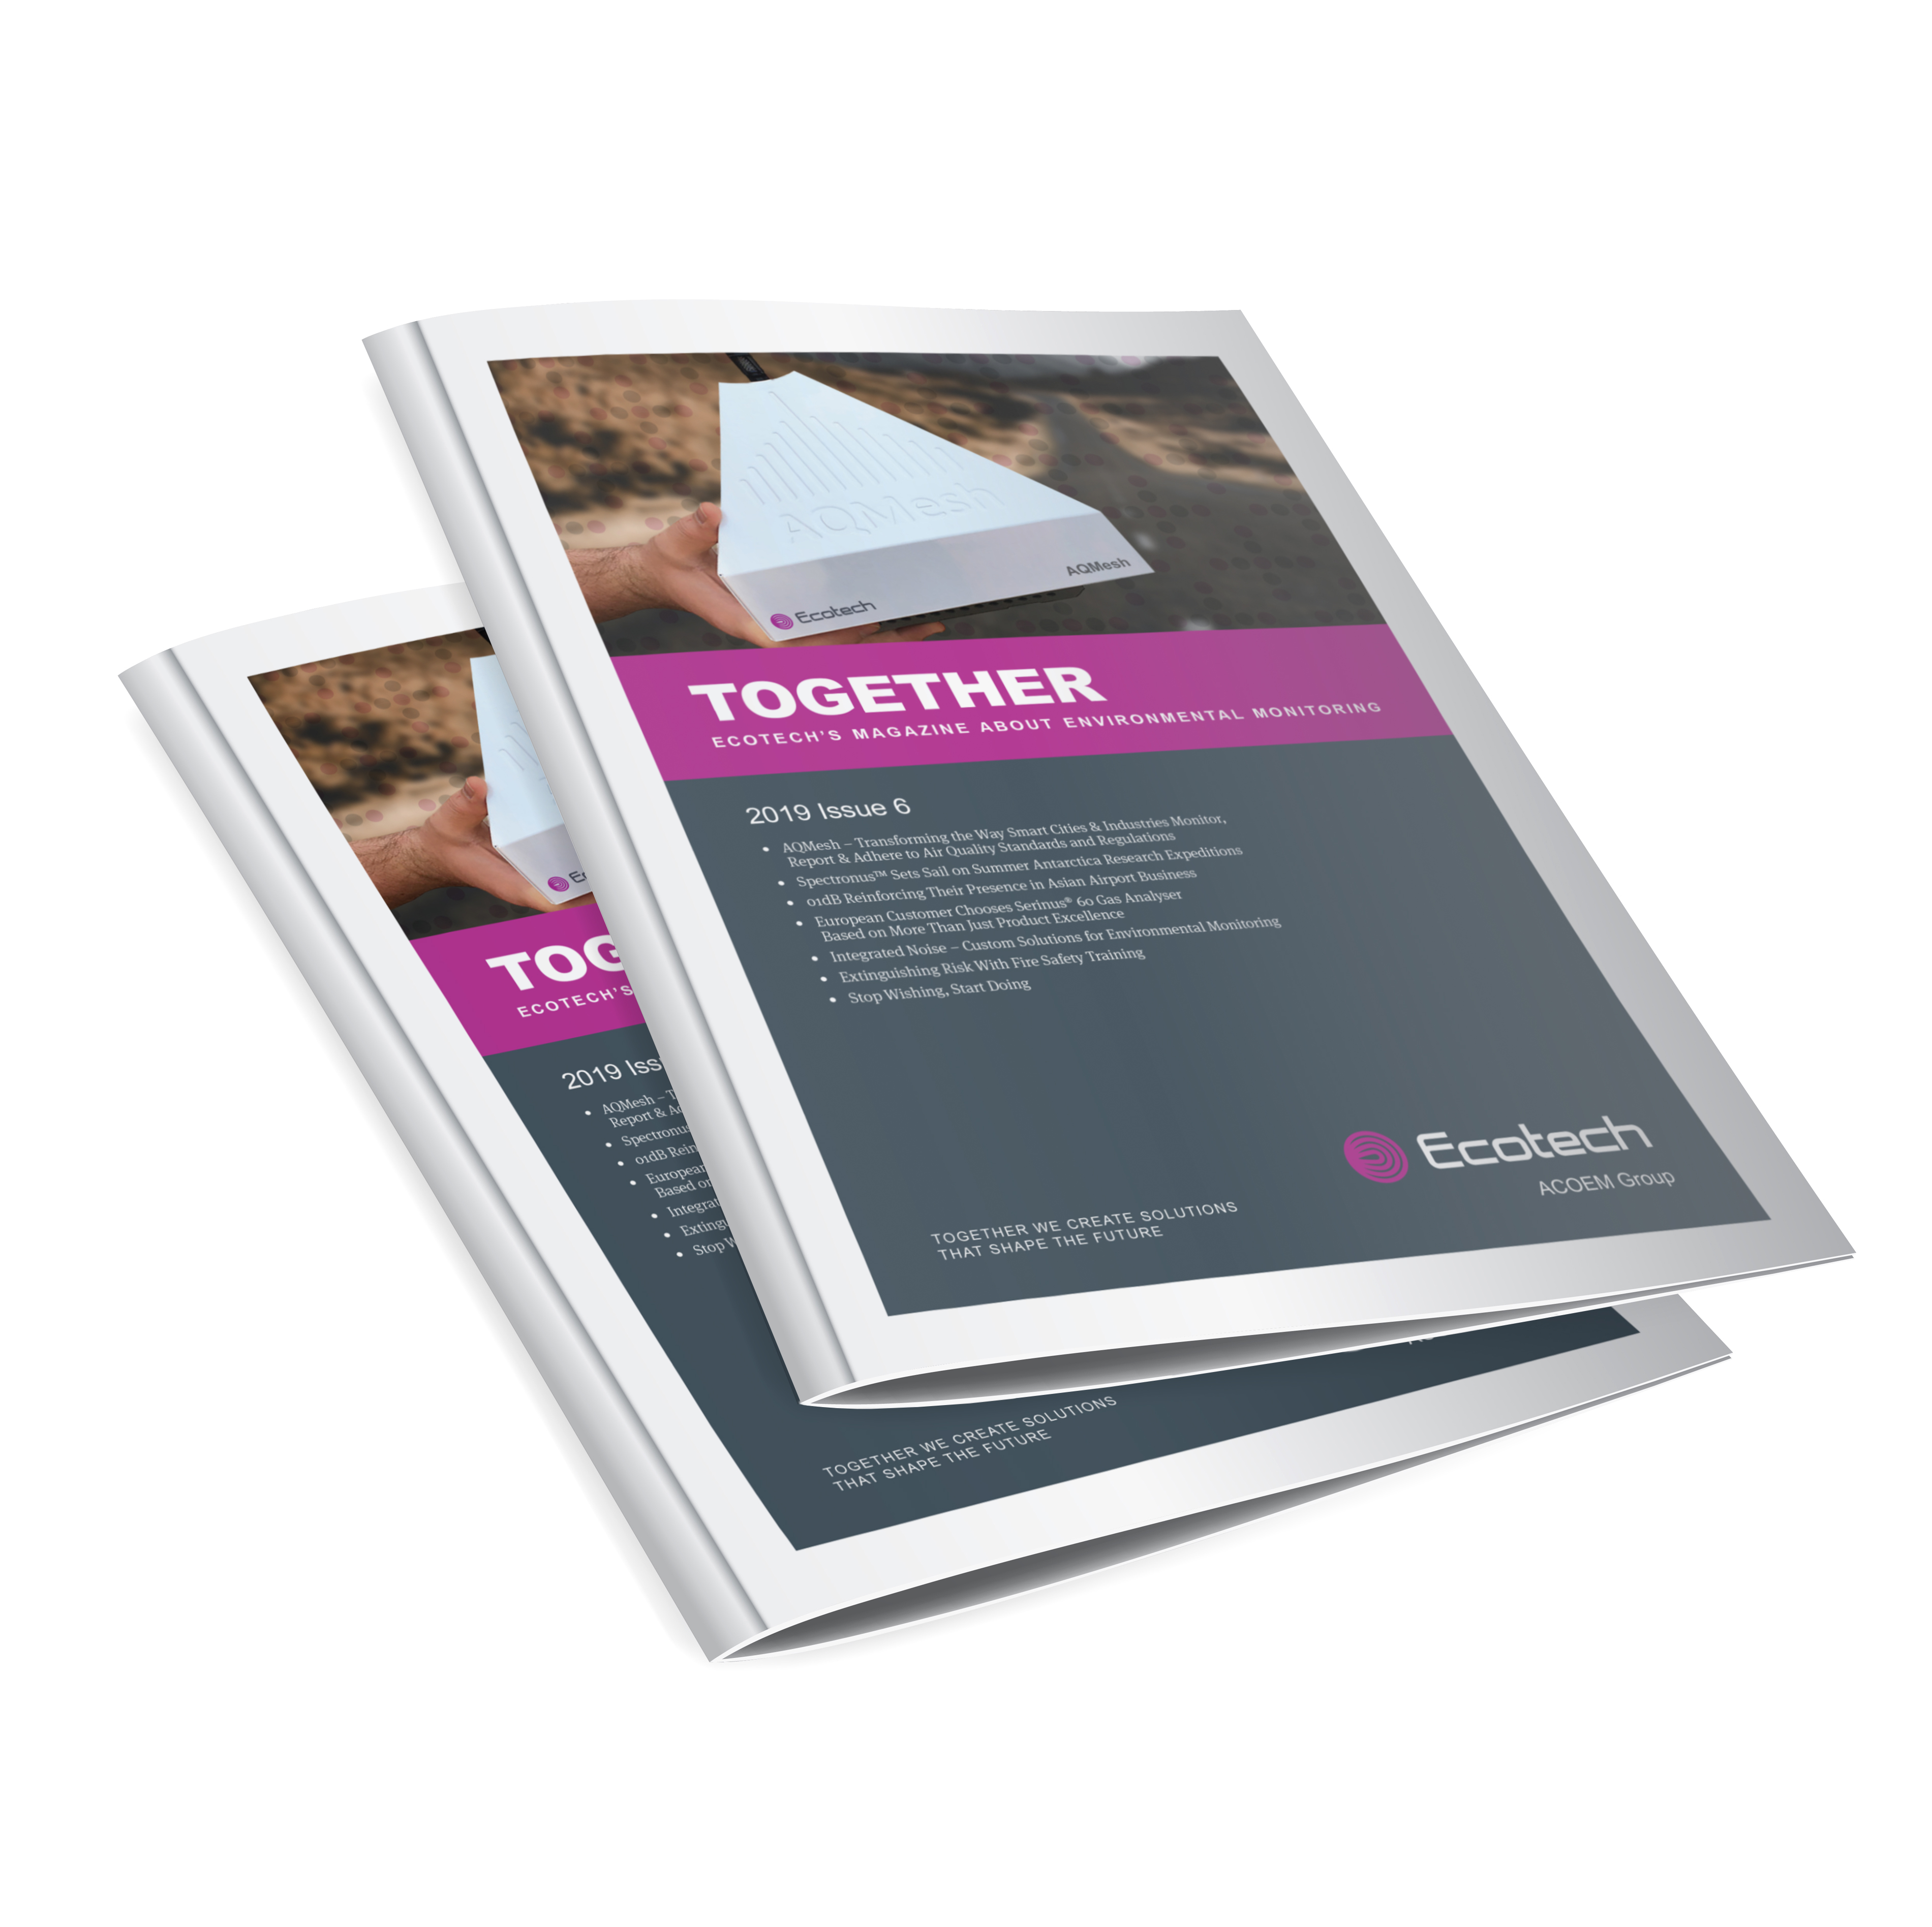 ECOTECH TOGETHER Issue 6 graphic